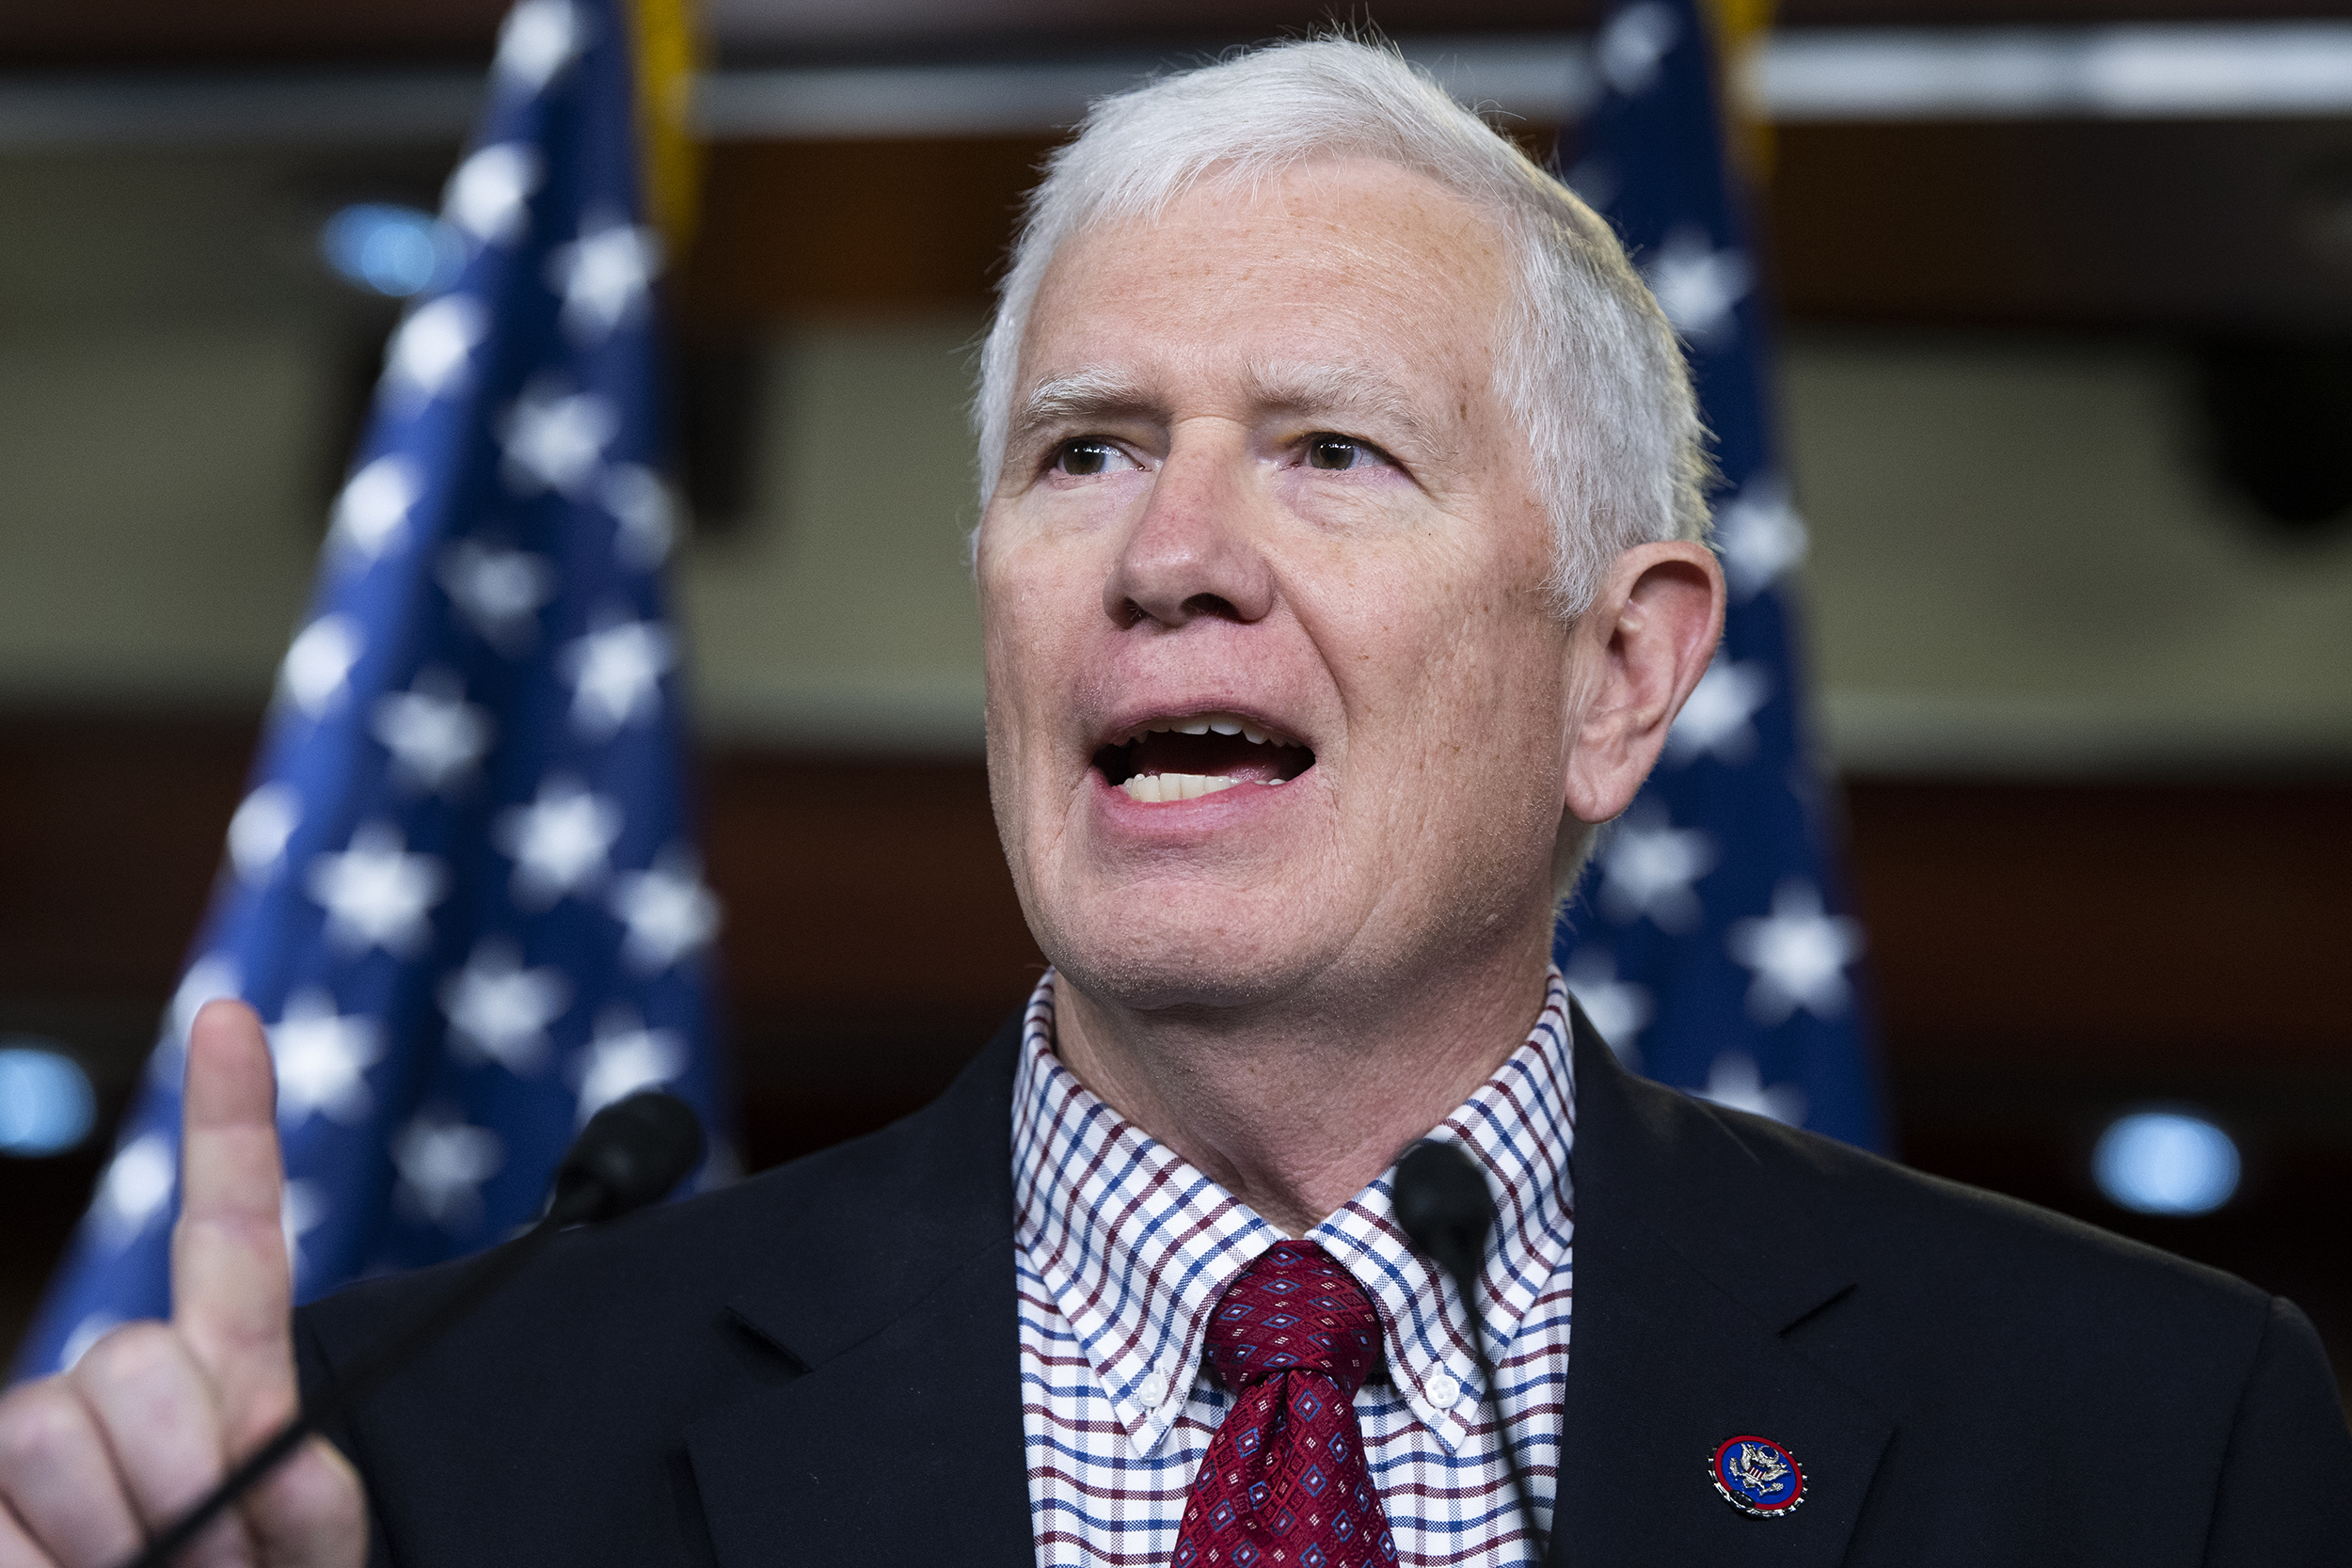 GOP Rep. Mo Brooks slammed by fellow lawmakers for statement about D.C. bomb threat suspect